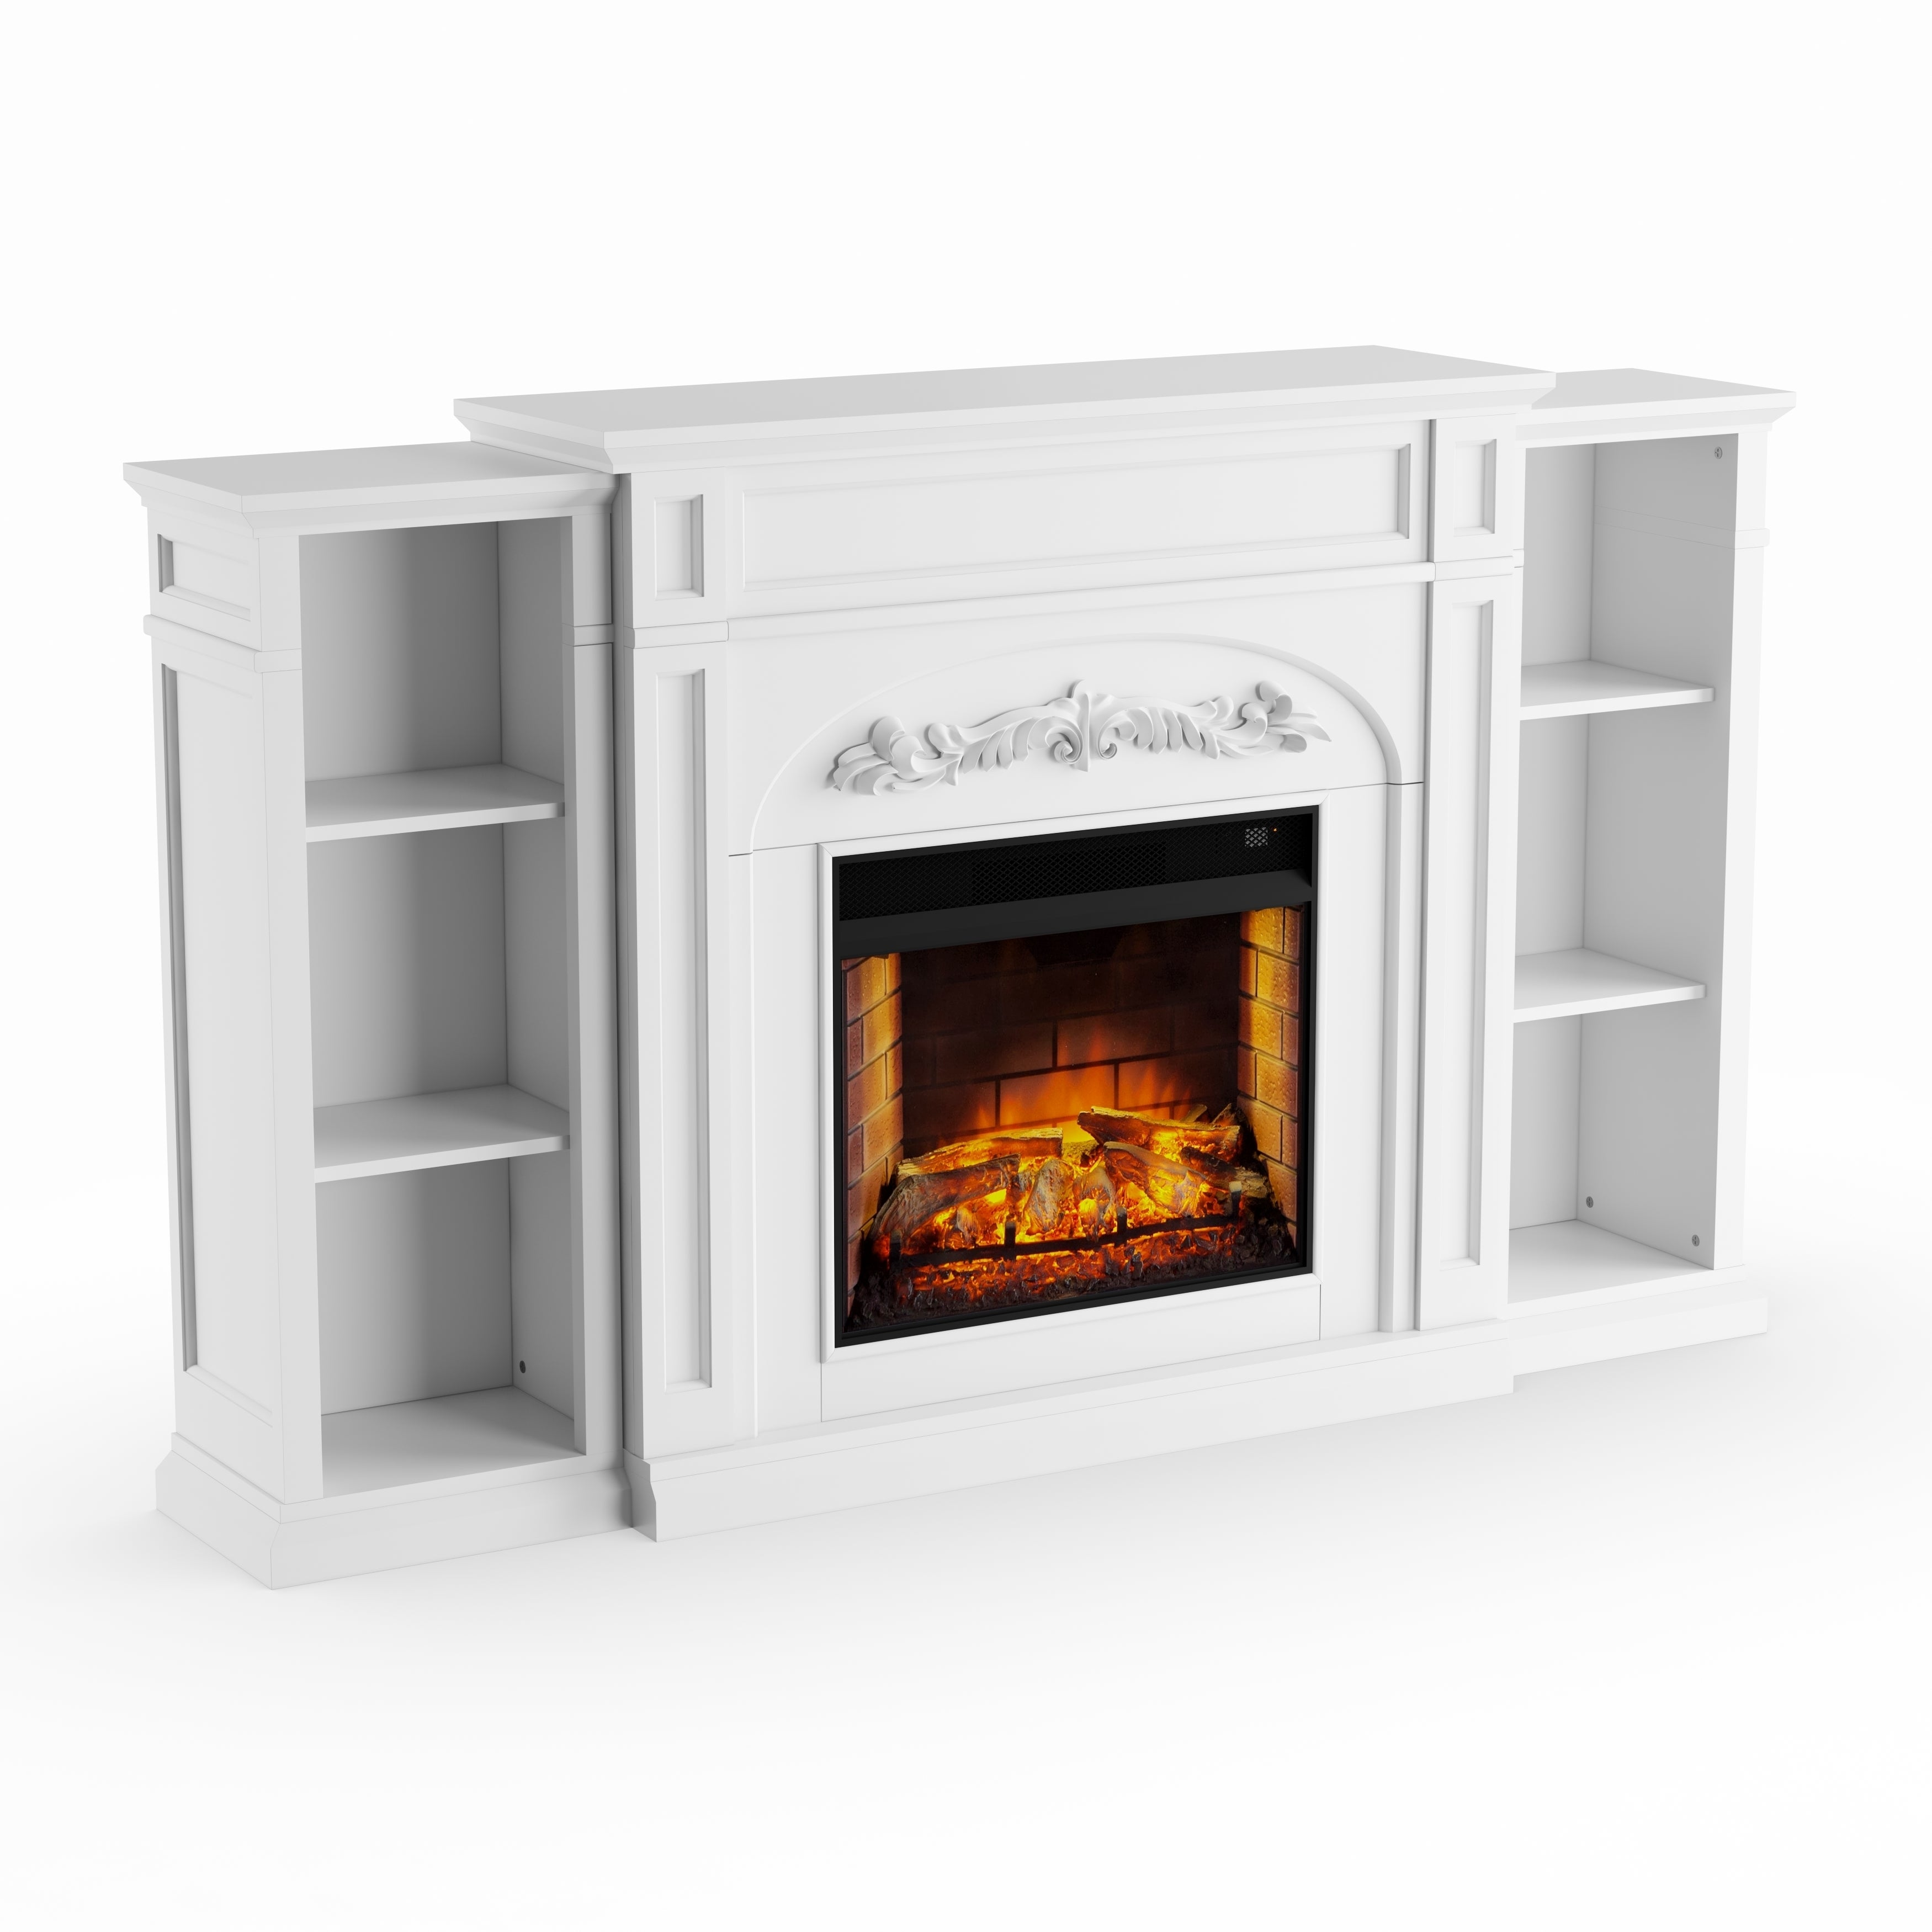 Copper Grove Mattie White Bookcase Electric Fireplace - N/A